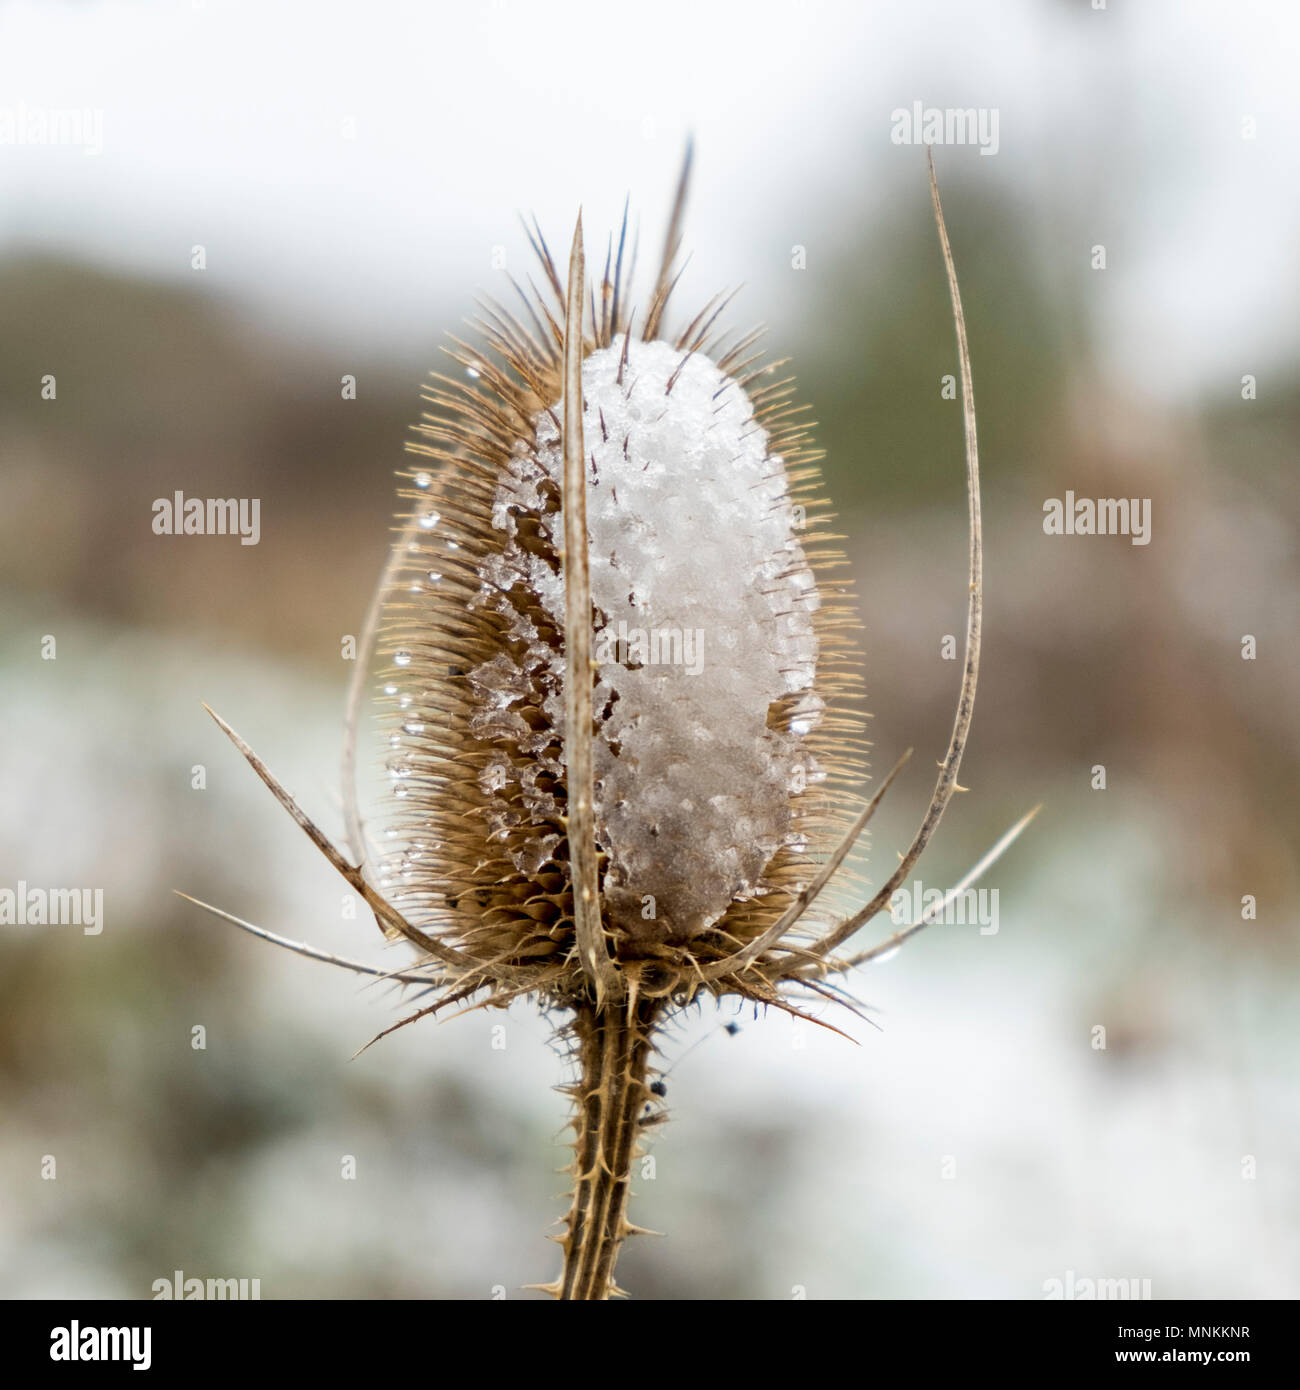 Dipsacus fullonum, common teasel with snow, England, UK - Stock Image